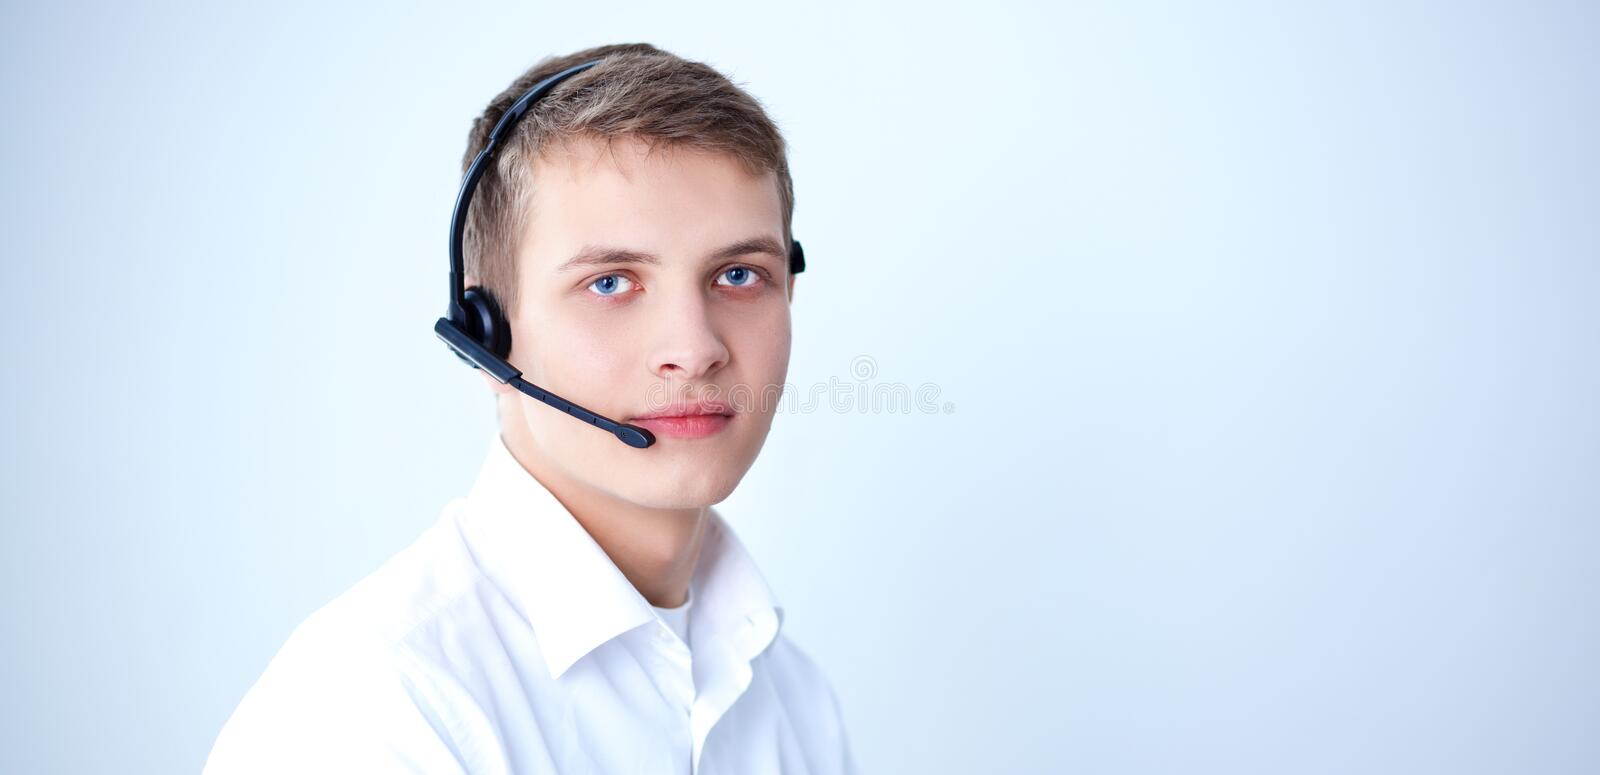 Customer support operator with a headset on white background stock photo